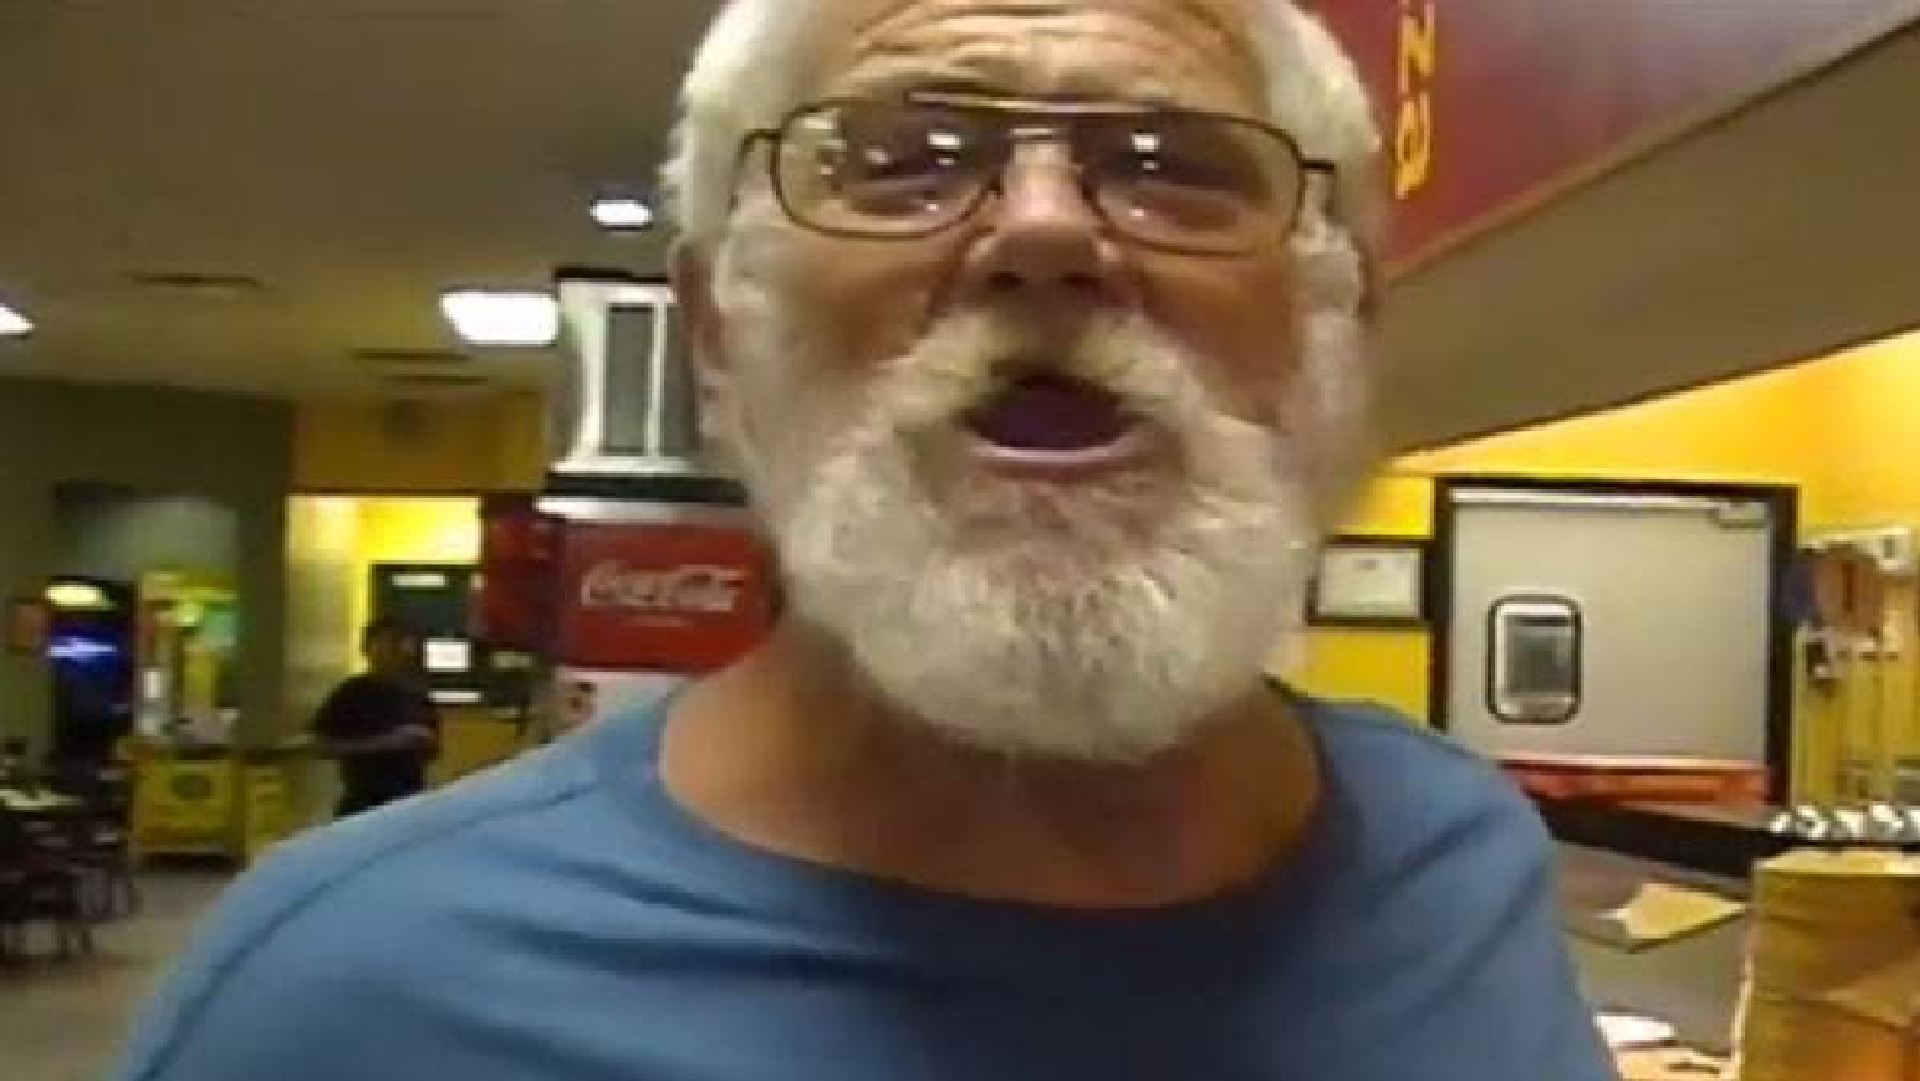 Angry Grandpa Goddamn >> Angry Grandpa Cici's Pizza Meltdown! by MetallicaFreak84 on DeviantArt